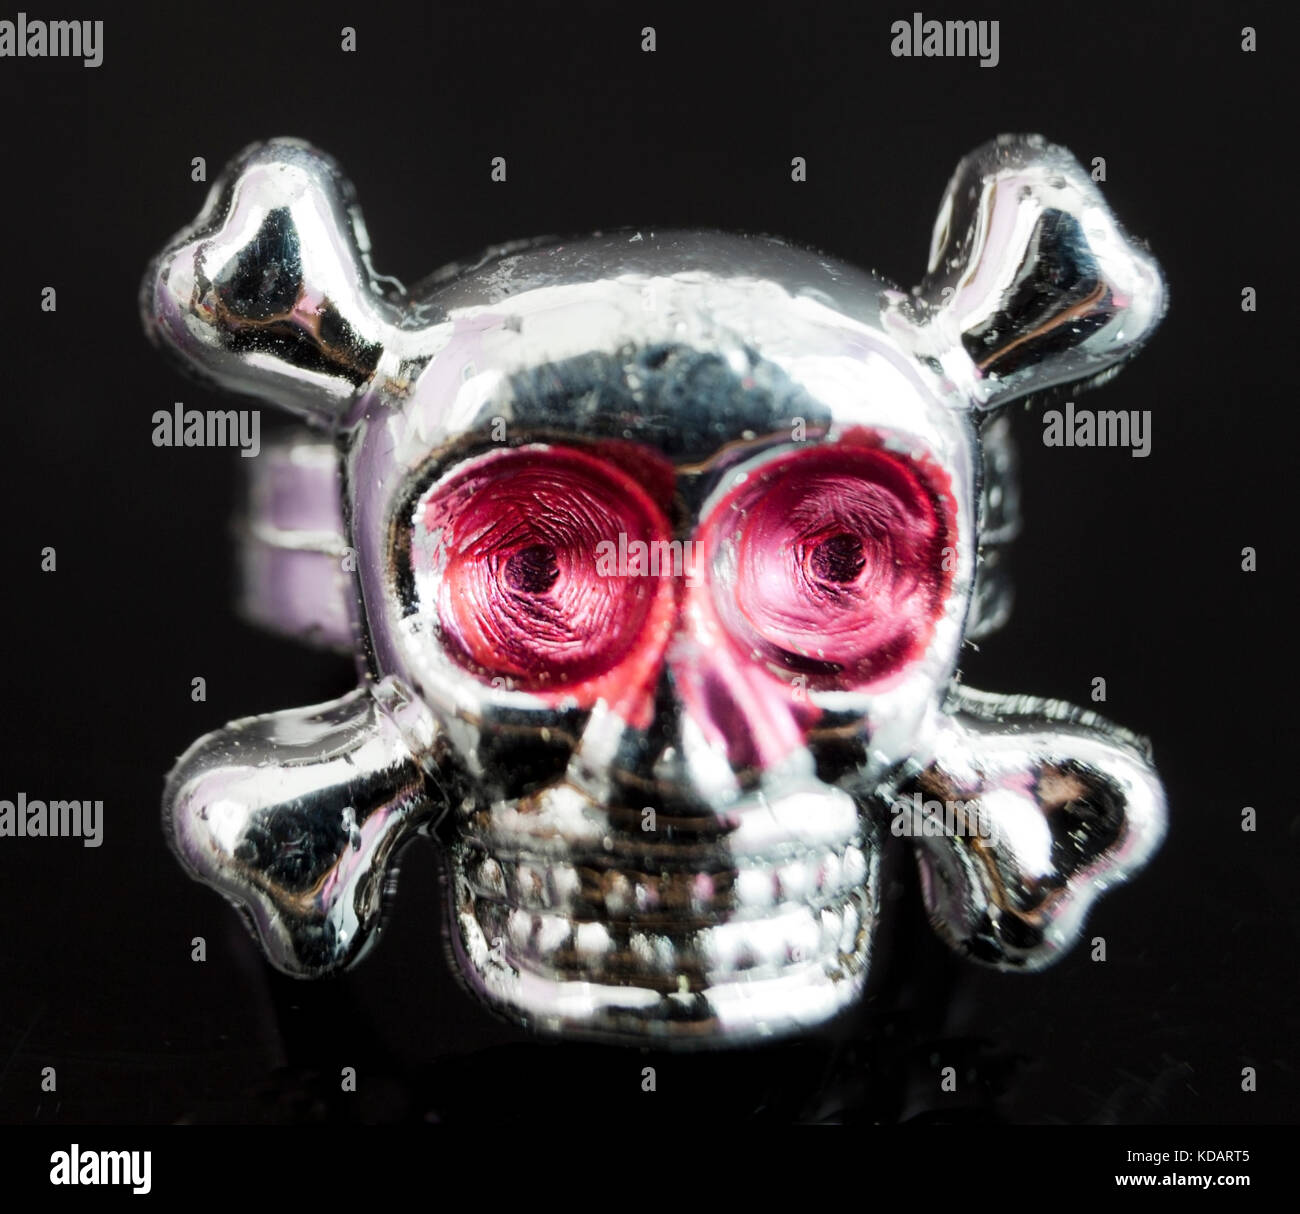 Close Up Of Toy Plastic Silver Skull And Crossbones Ring On Black Background